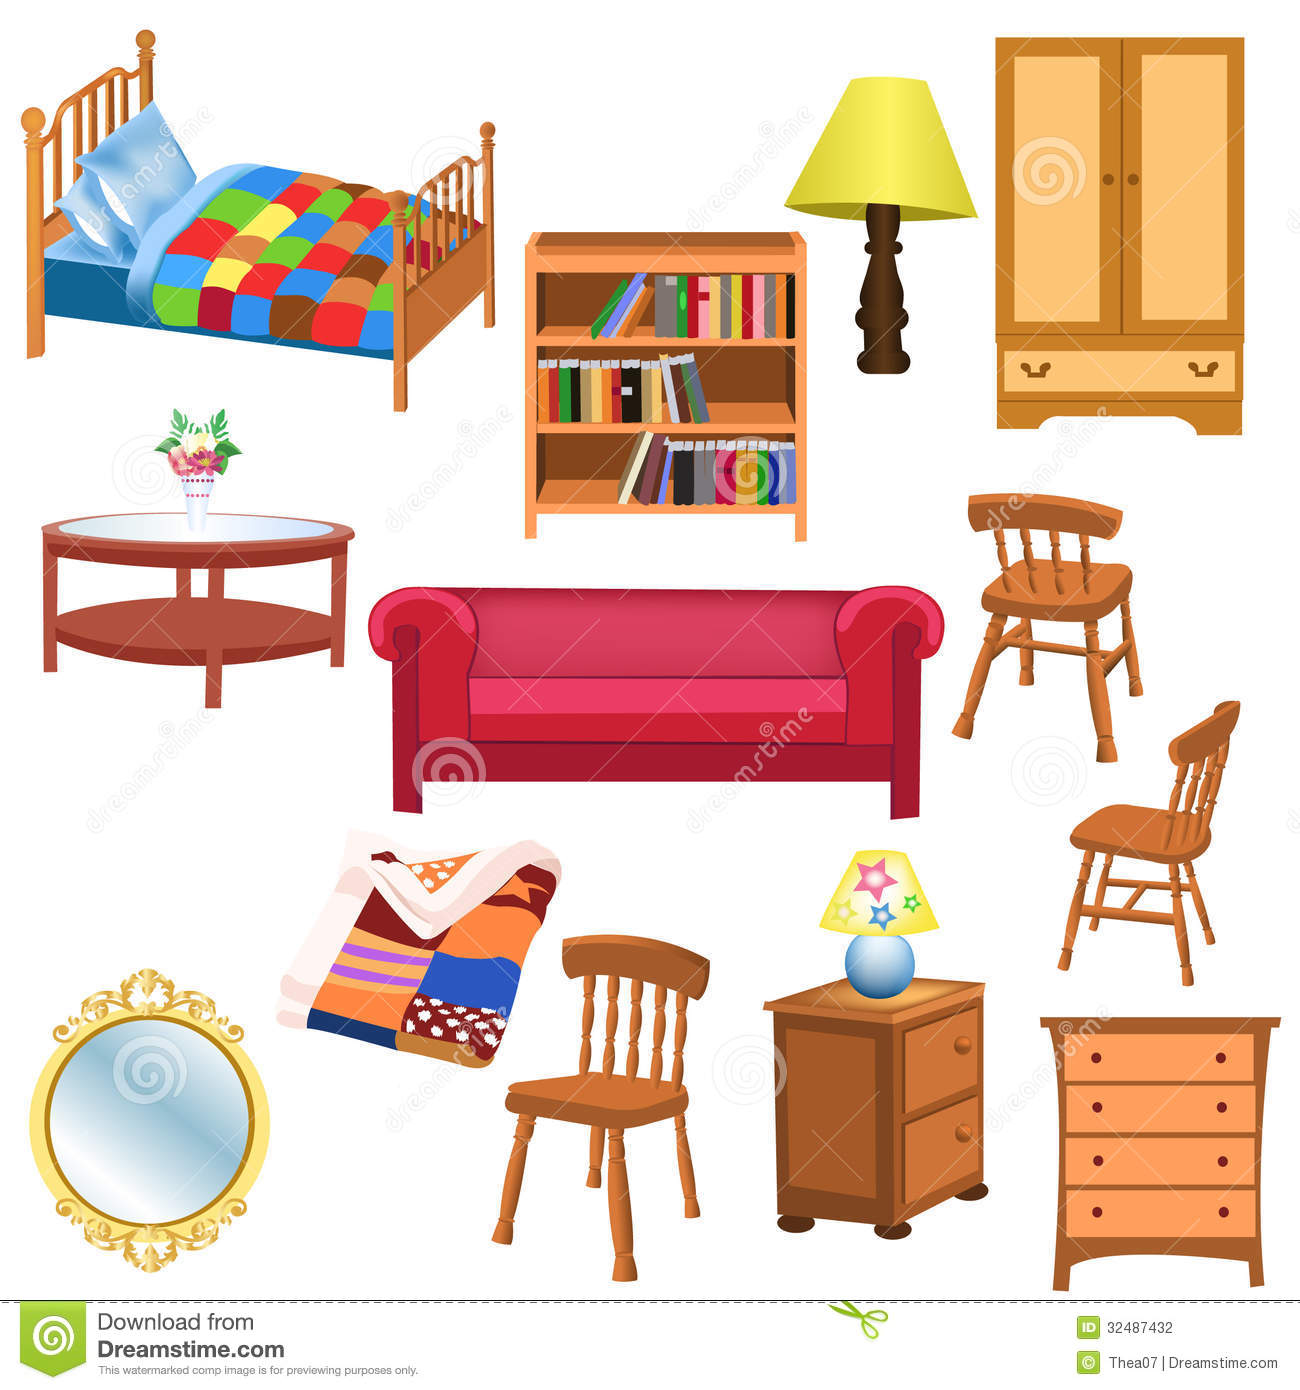 Clip Art House Furniture Clipart - Clipart Kid